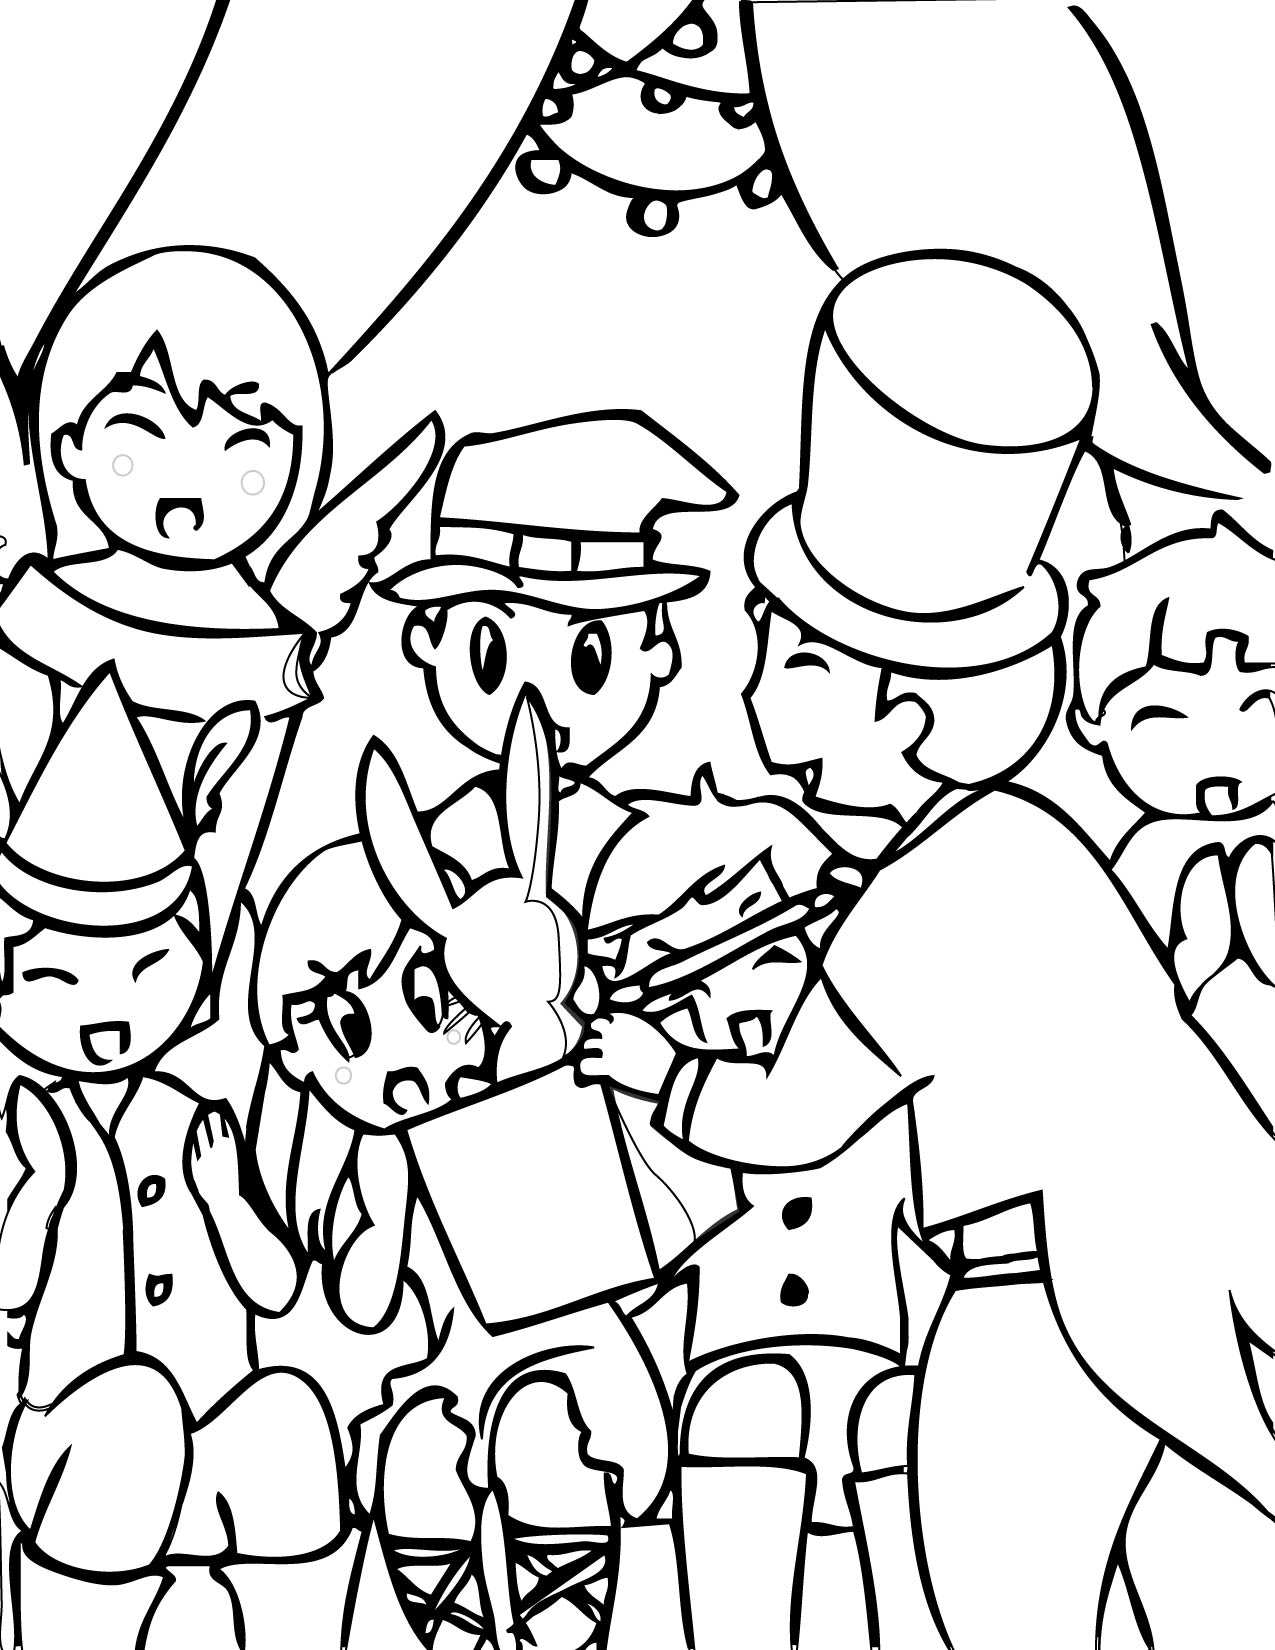 magic coloring page magic coloring pages page magic coloring 1 2